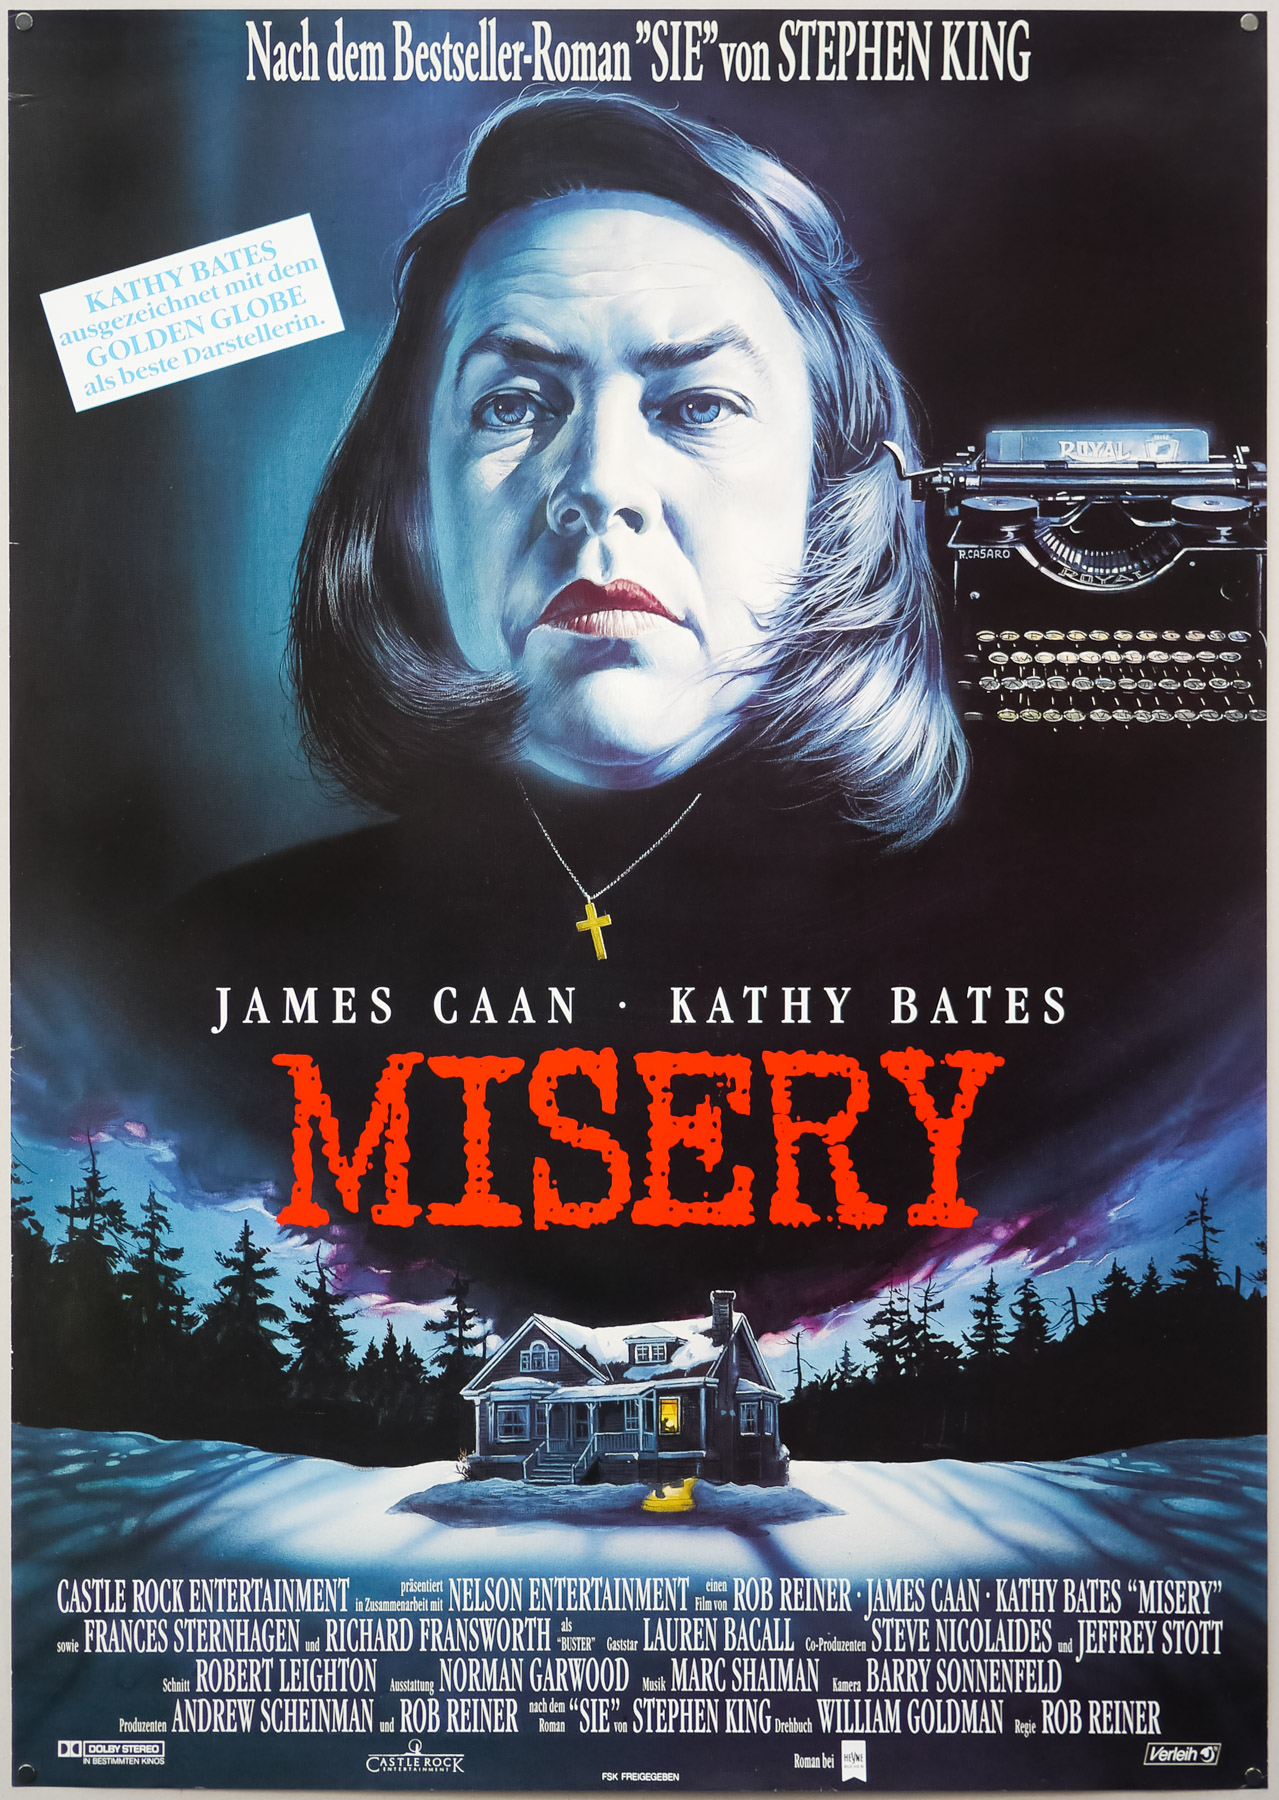 The German poster for Misery, designed and painted by Renato Casaro, 1990